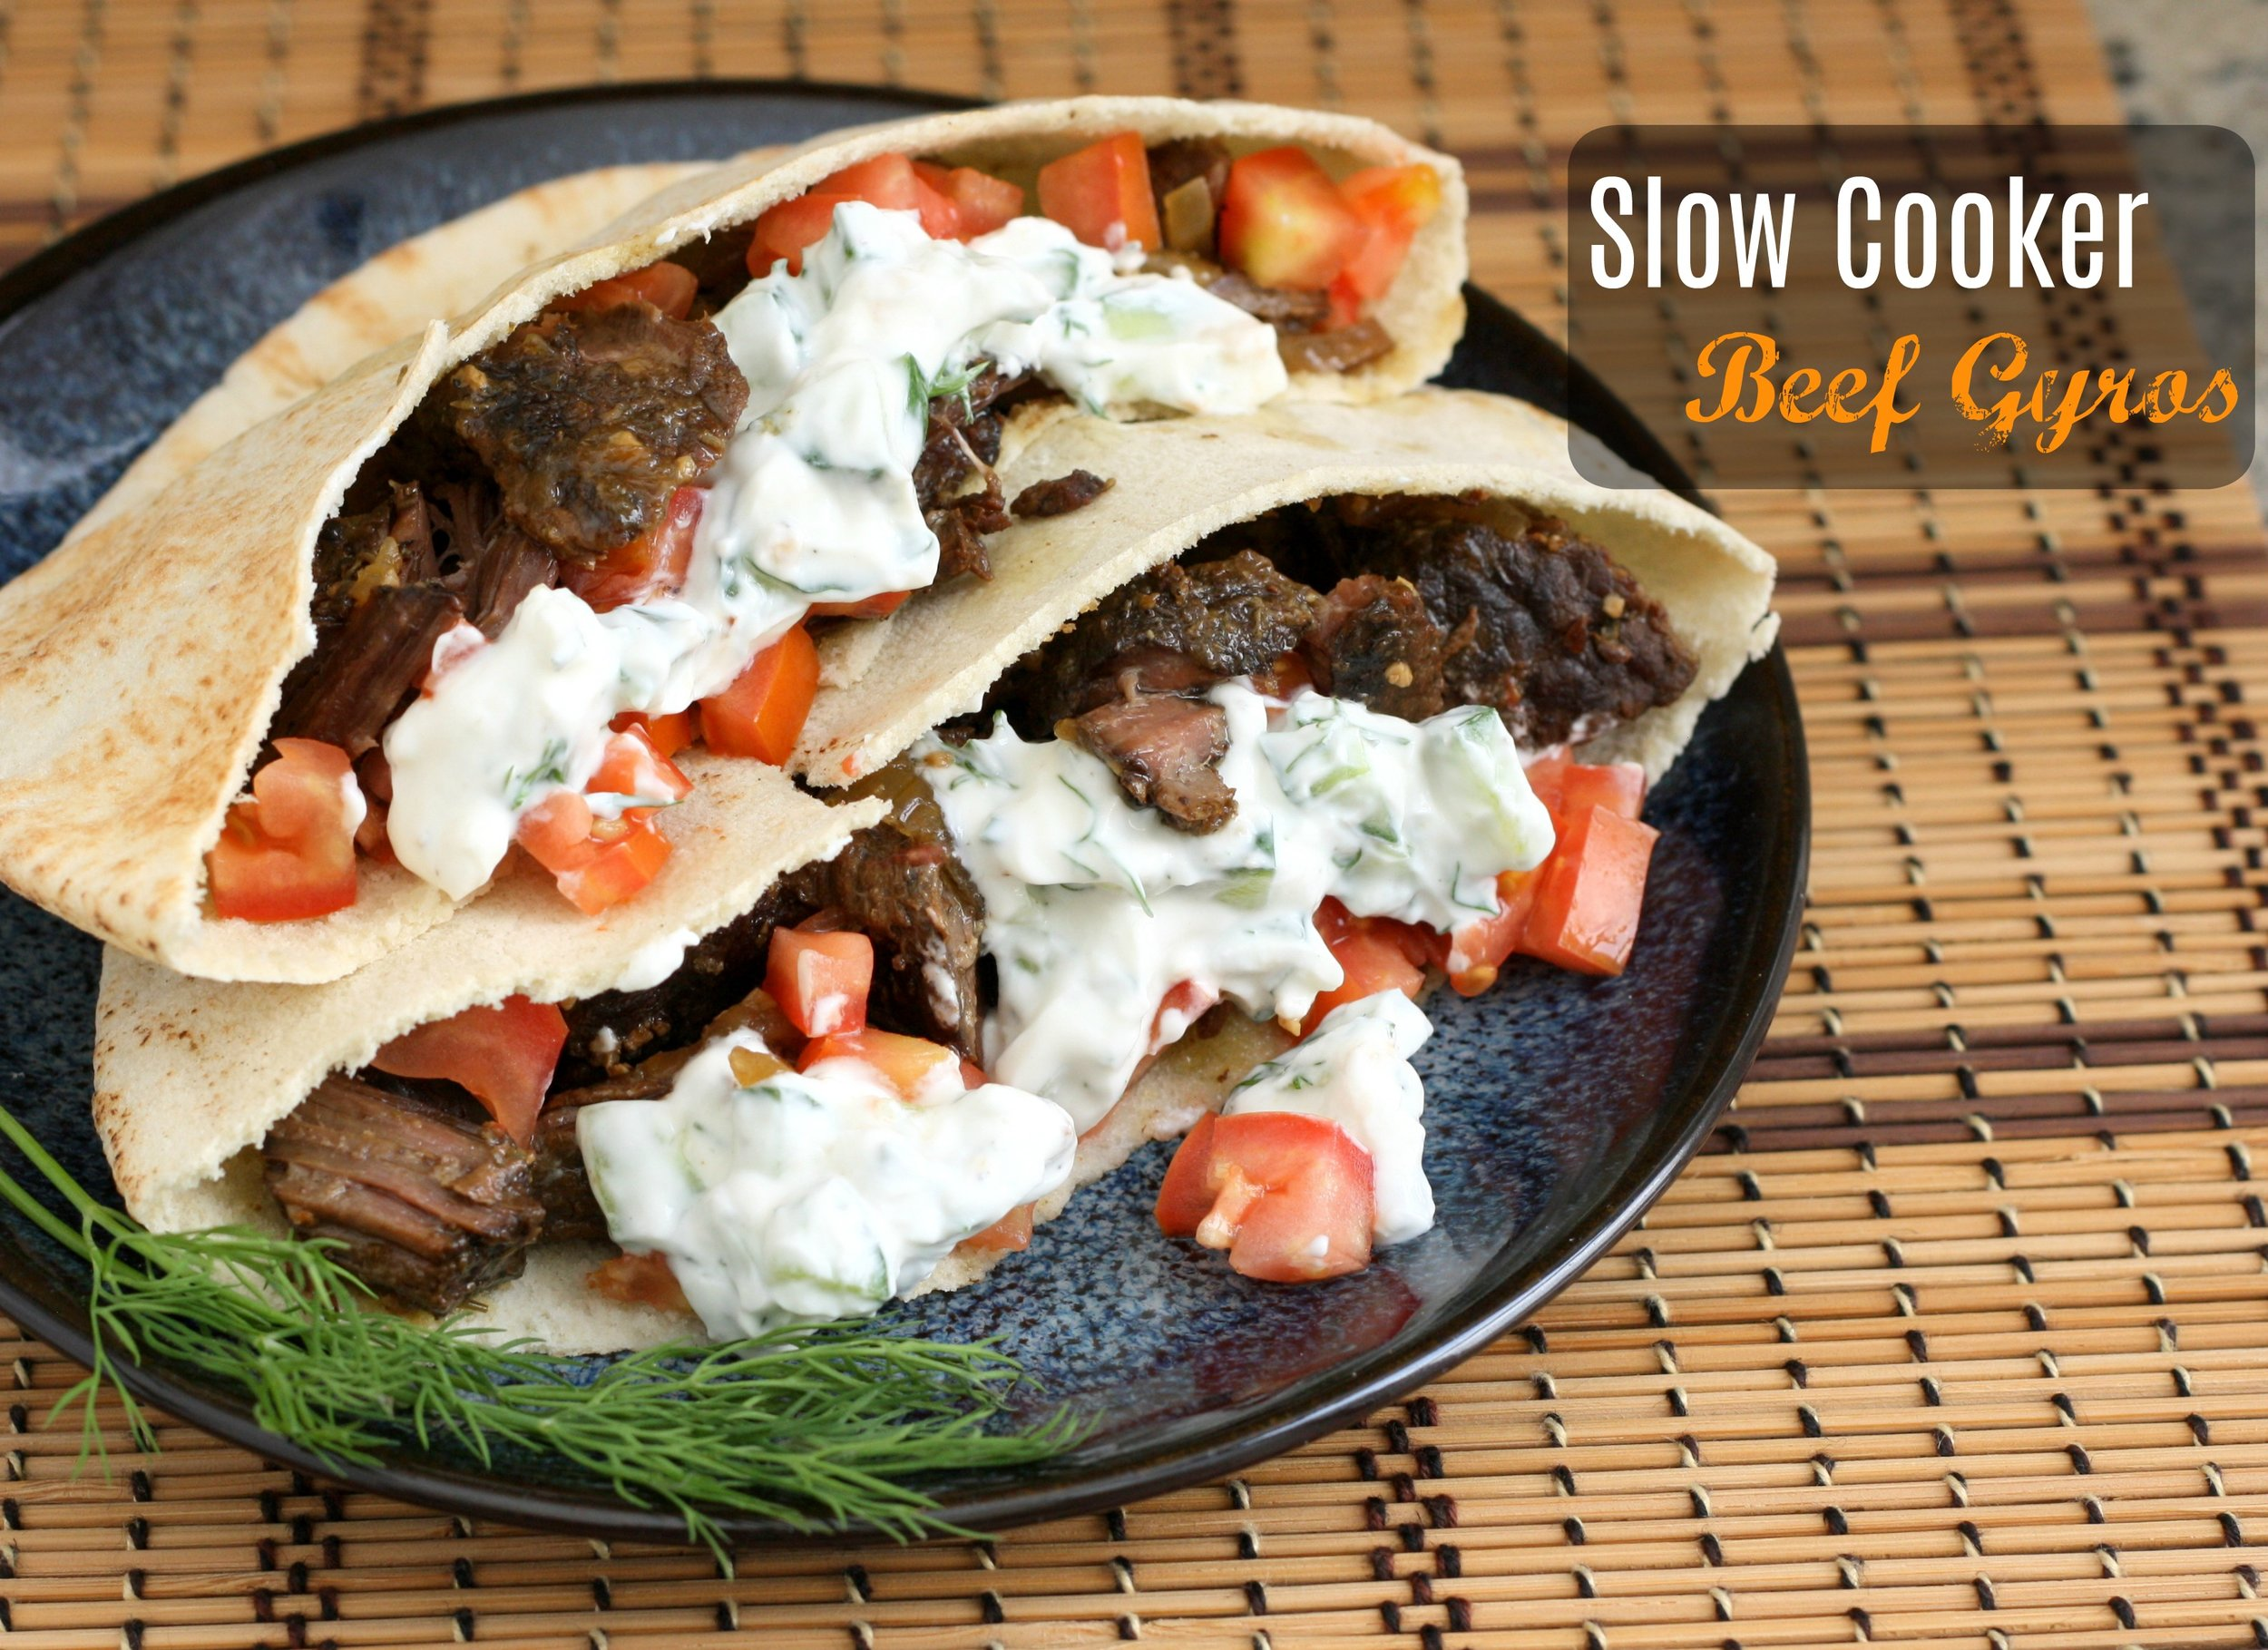 Slow Cooker Beef Gyros1-text.jpg